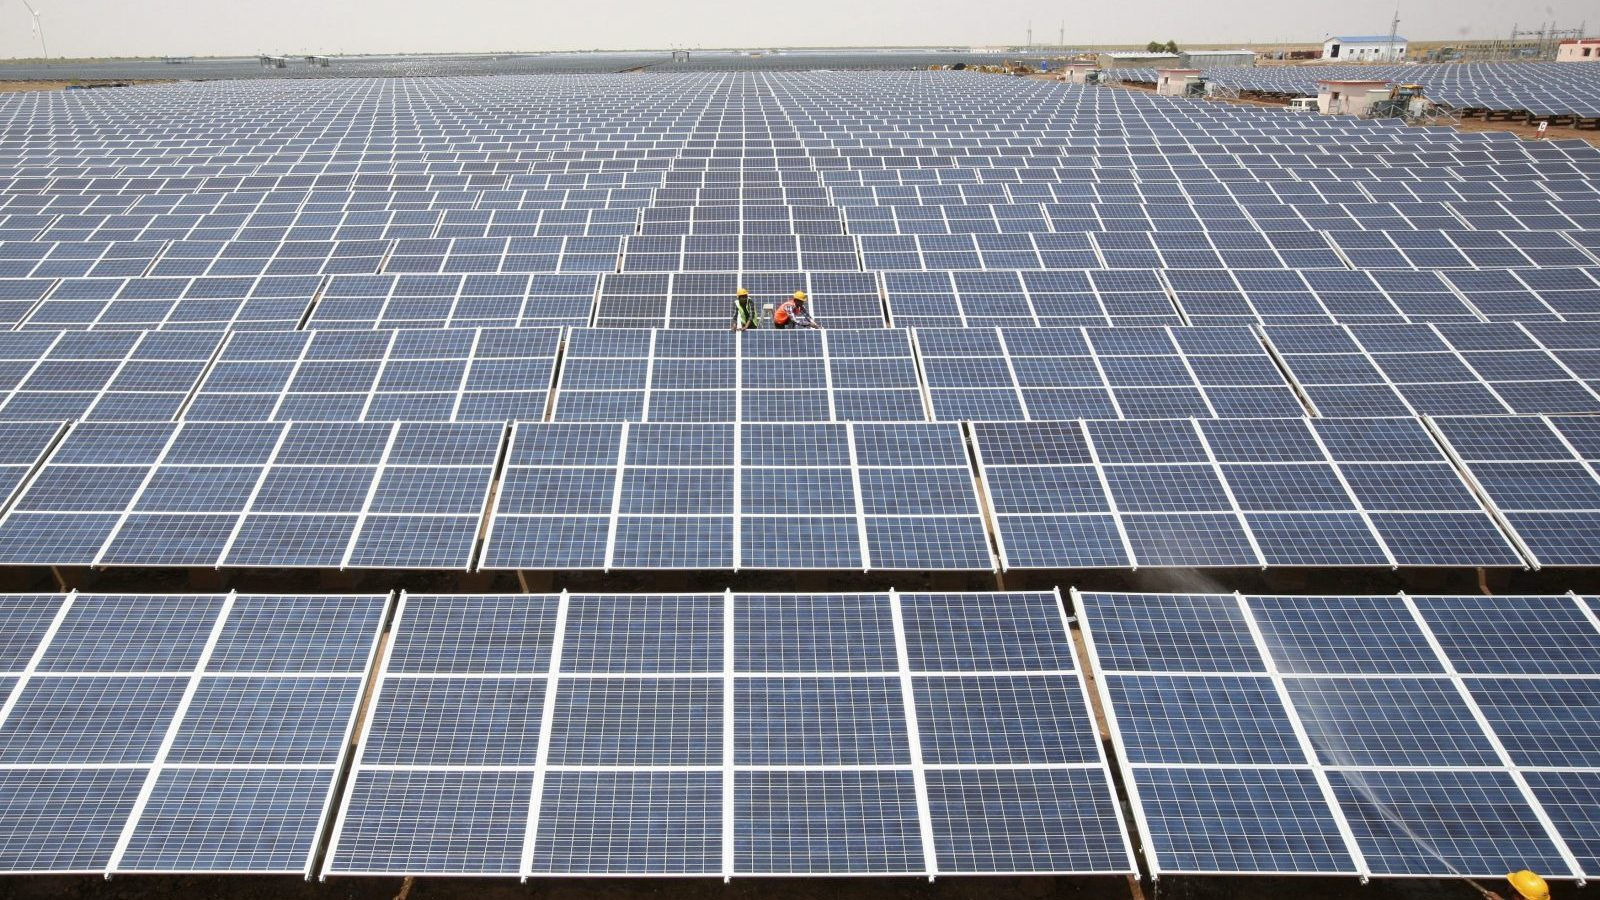 Workers install photovoltaic solar panels at the Gujarat solar park under construction in Charanka village in Patan district of the western Indian state of Gujarat April 14, 2012. According to officials, the solar park is the largest in India which will generate 210 megawatts and will be operational from April 19, 2012. REUTERS/Amit Dave (INDIA - Tags: BUSINESS ENERGY) - GM1E84E1OWQ01